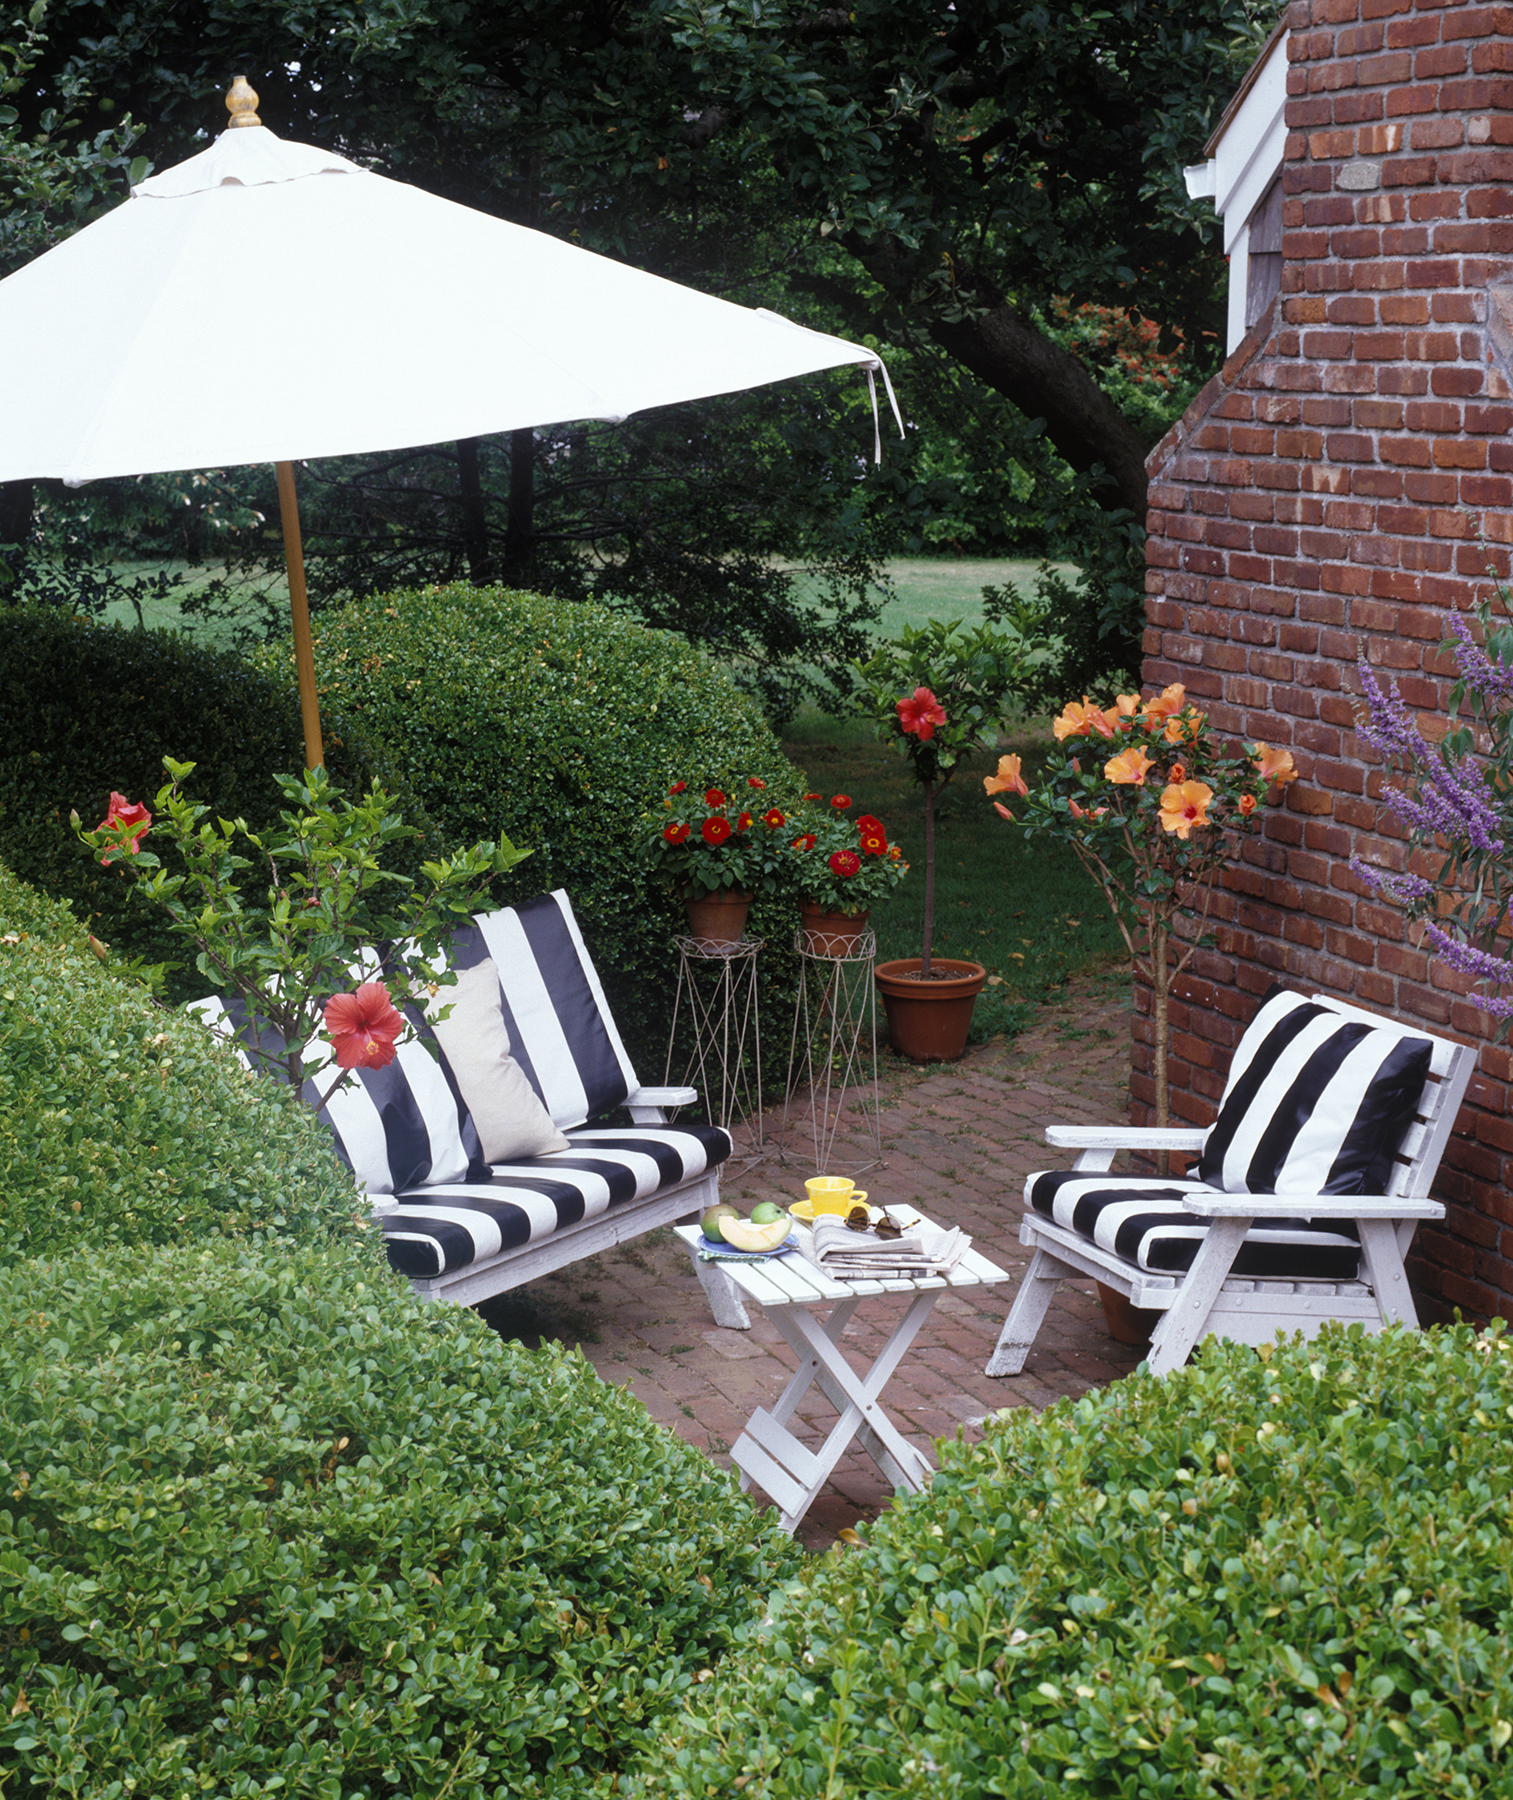 5 SmartDecorating Ideas to Make the Most Out of a Small Patio